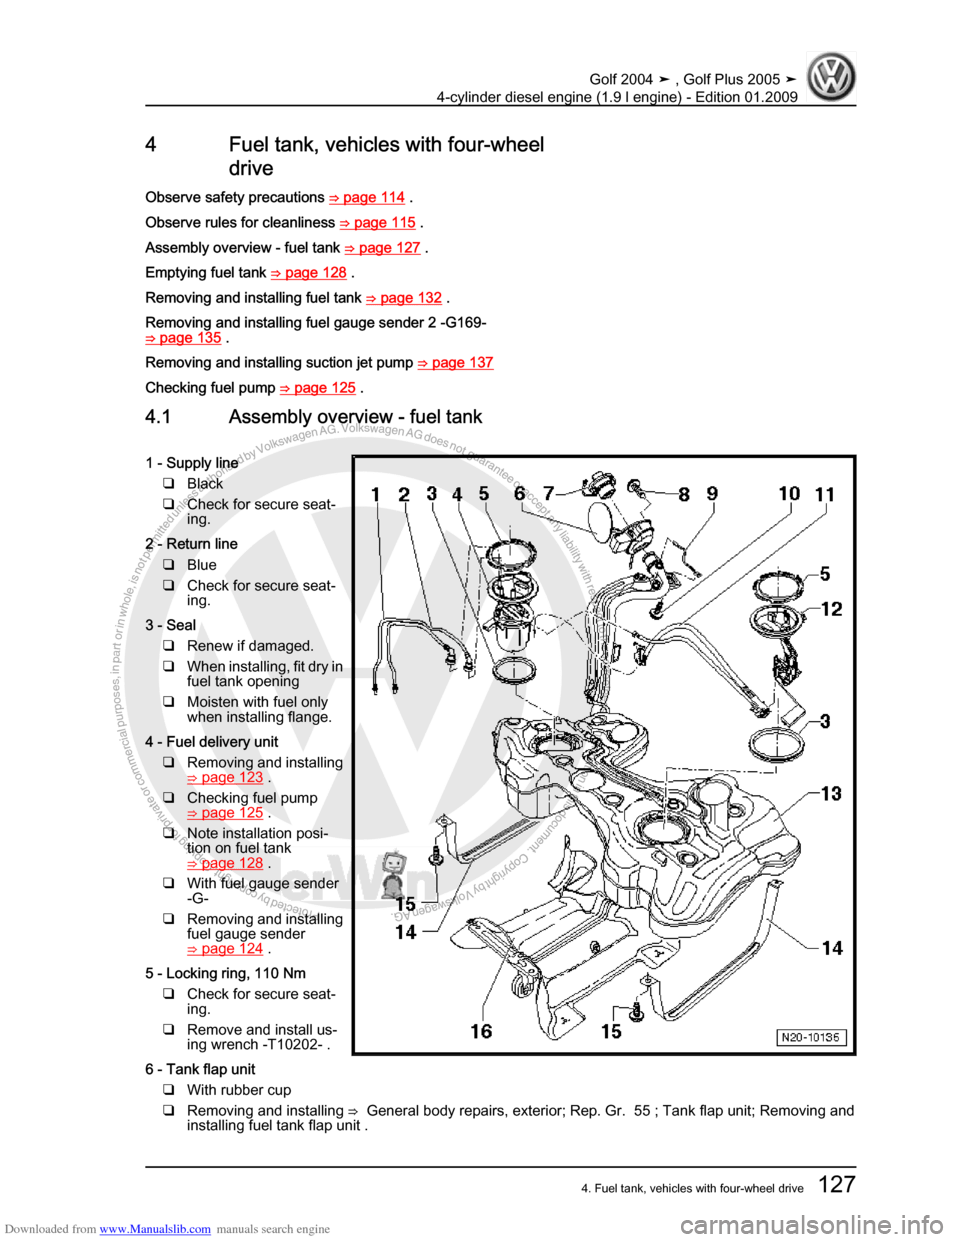 VOLKSWAGEN GOLF PLUS 2005 1K / 5.G Service Workshop Manual